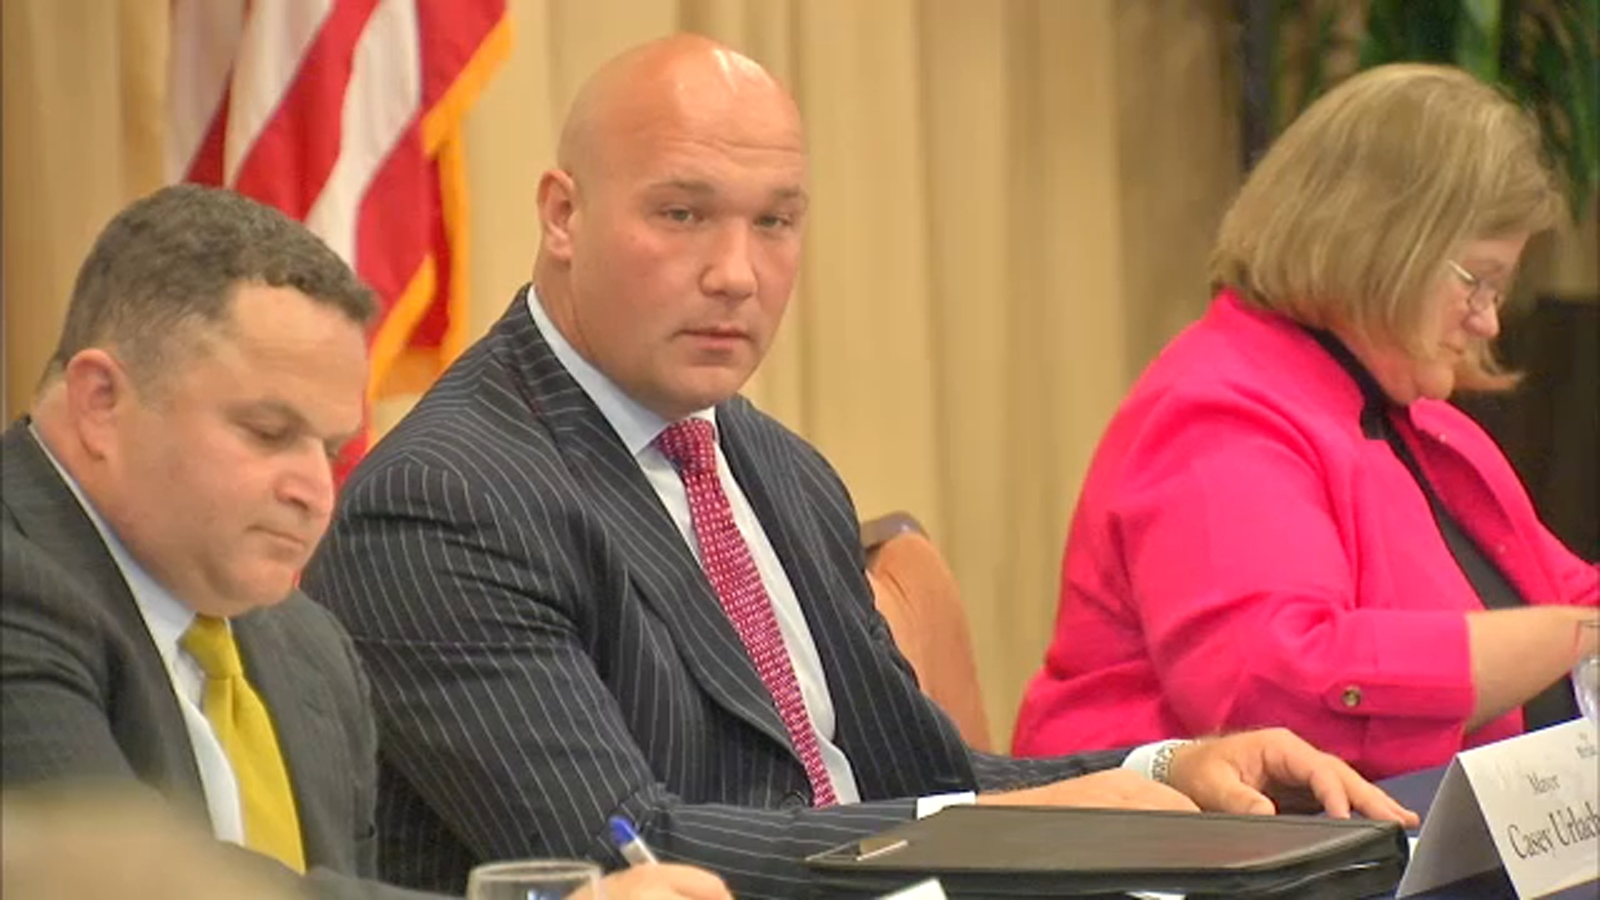 President Donald Trump pardons include Casey Urlacher, brother of Brian Urlacher, charged in illegal gambling business